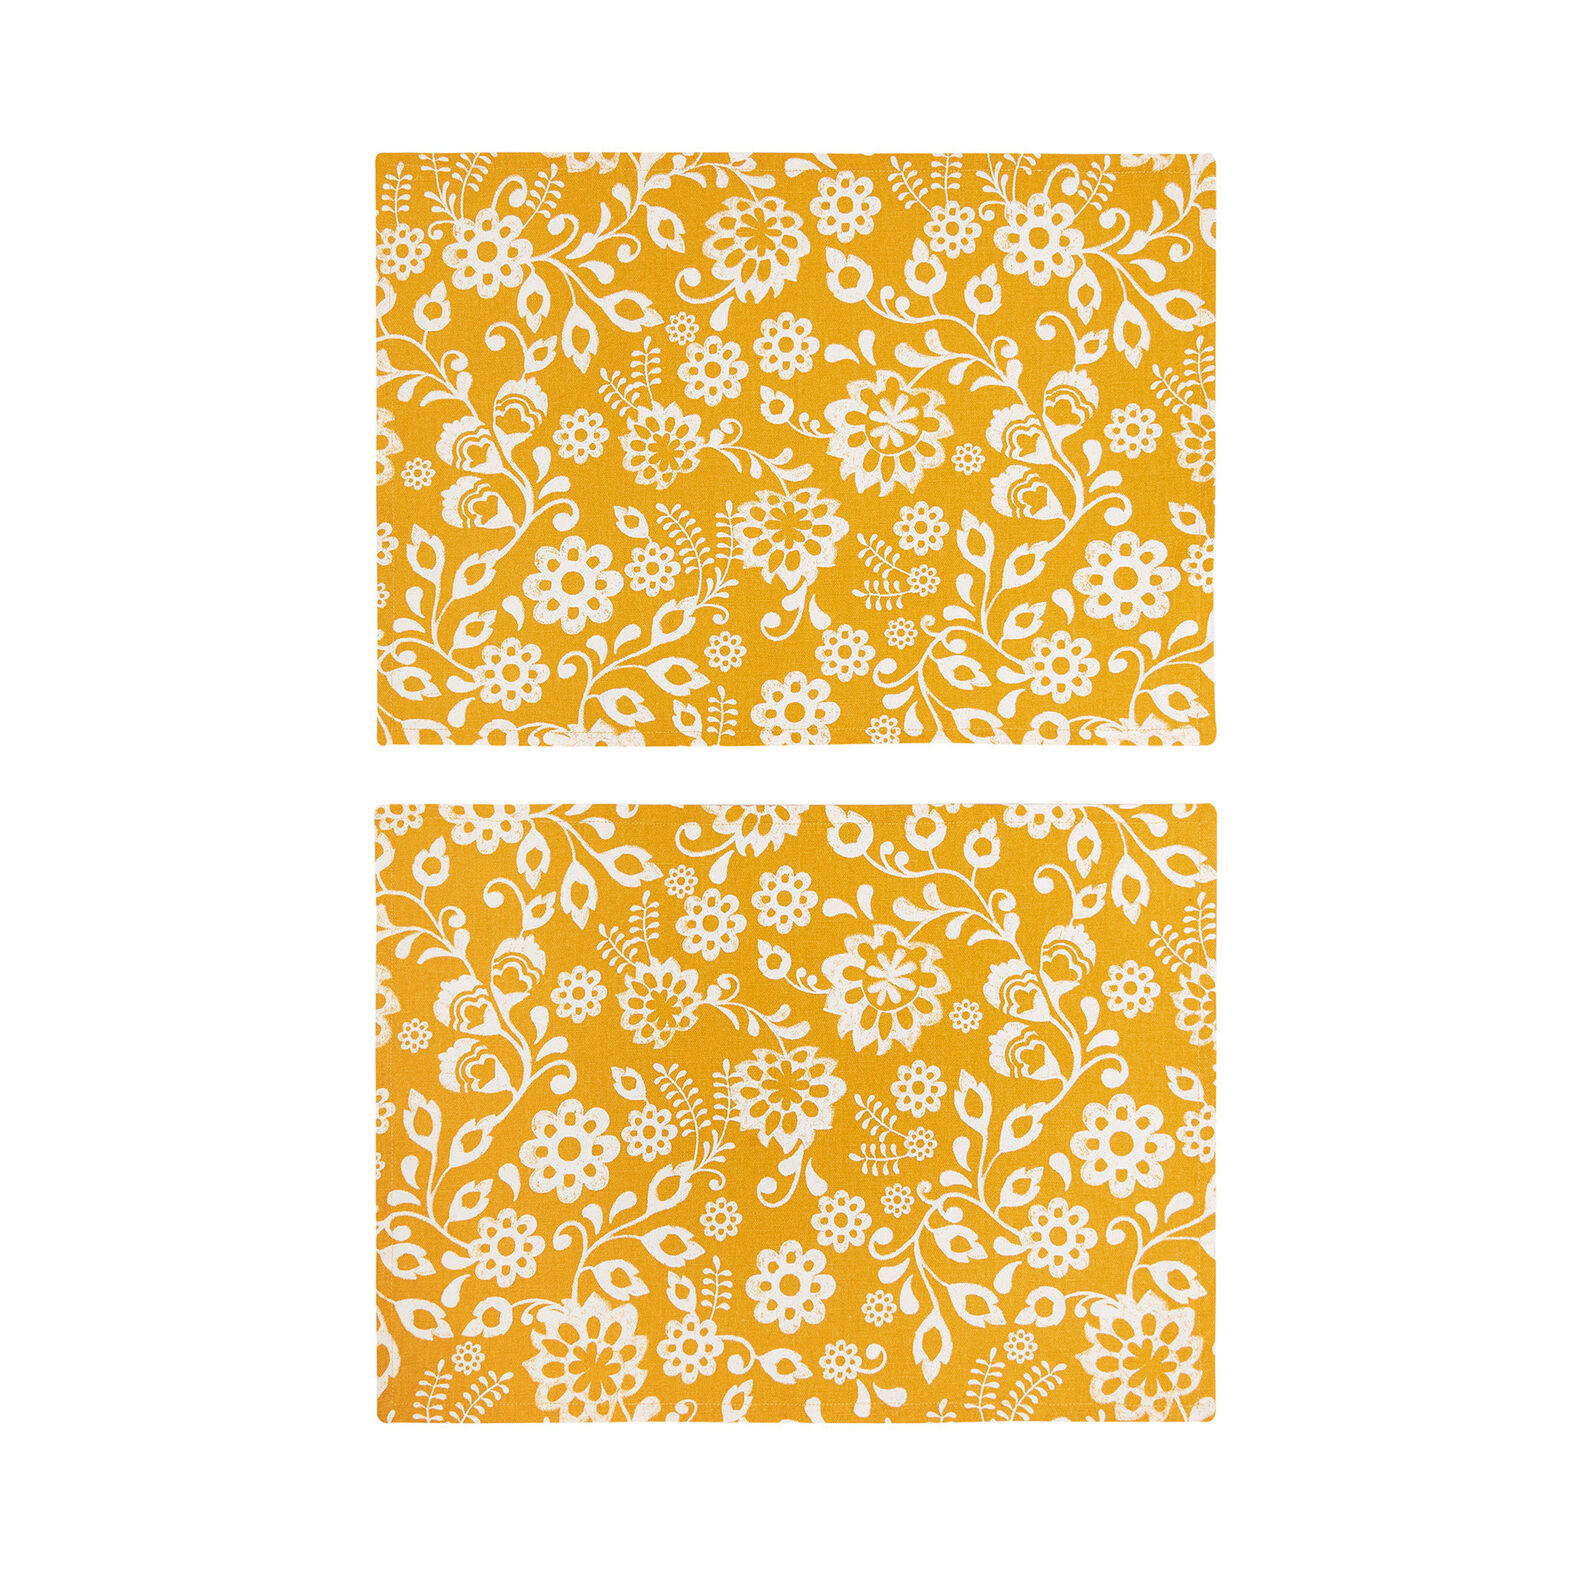 Set of 2 table mats in 100% cotton with sunflowers print